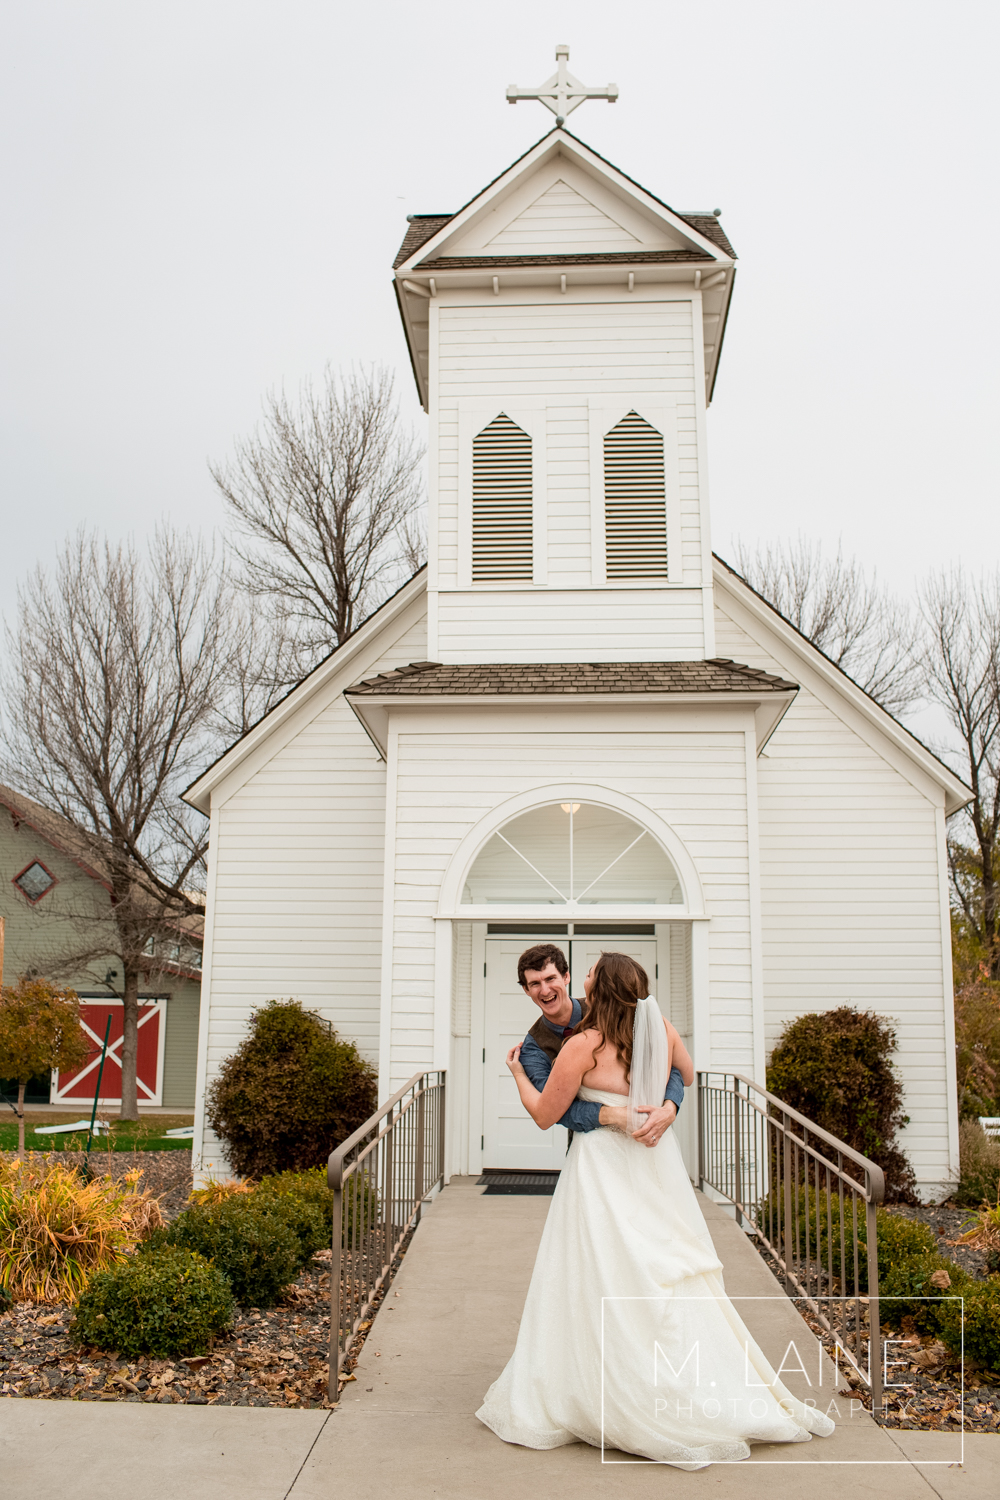 Moses-Lake-Quincy-Washington-Wedding-6020.jpg